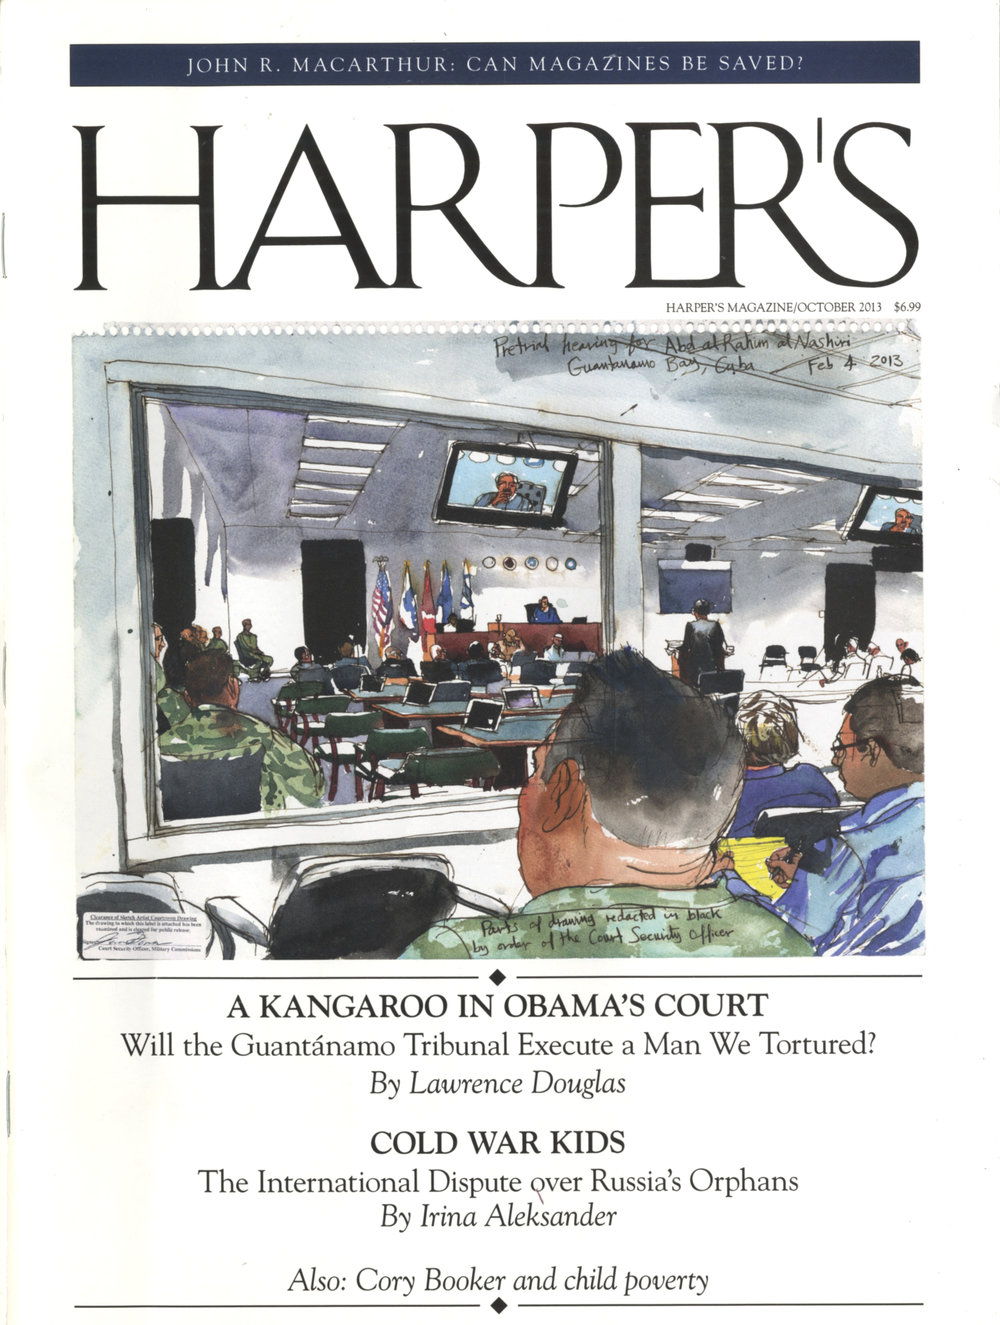 Steve Mumford, cover illustration for Harper's, October 2013. Evidence for the proposition that illustrated journalism is inching back into view–if mostly online, as opposed to print. This project is an exception. Mumford published Baghdad Journal, a book of reportage drawings he produced on location in Iraq 2003-04, with Drawn & Quarterly, in 2006.